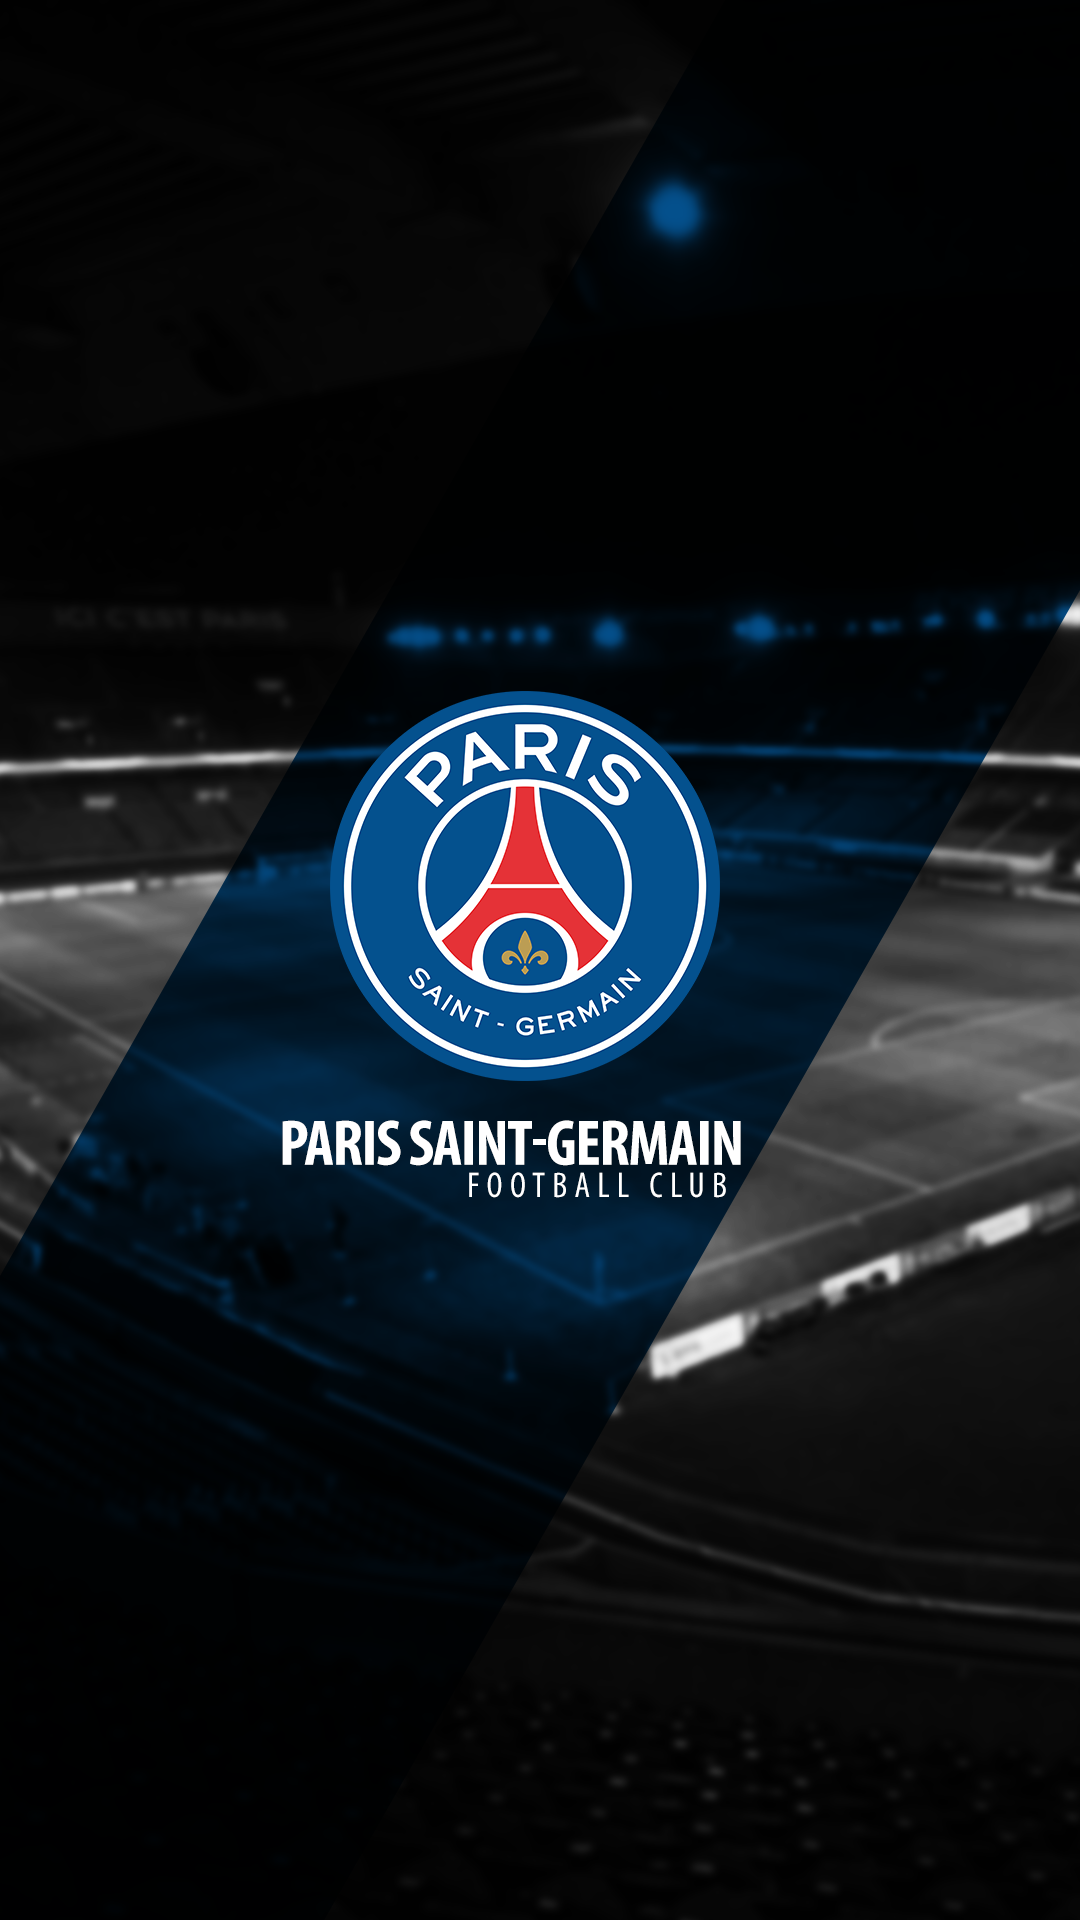 Paris Saint Germain Wallpaper iPhone Futebol de rua